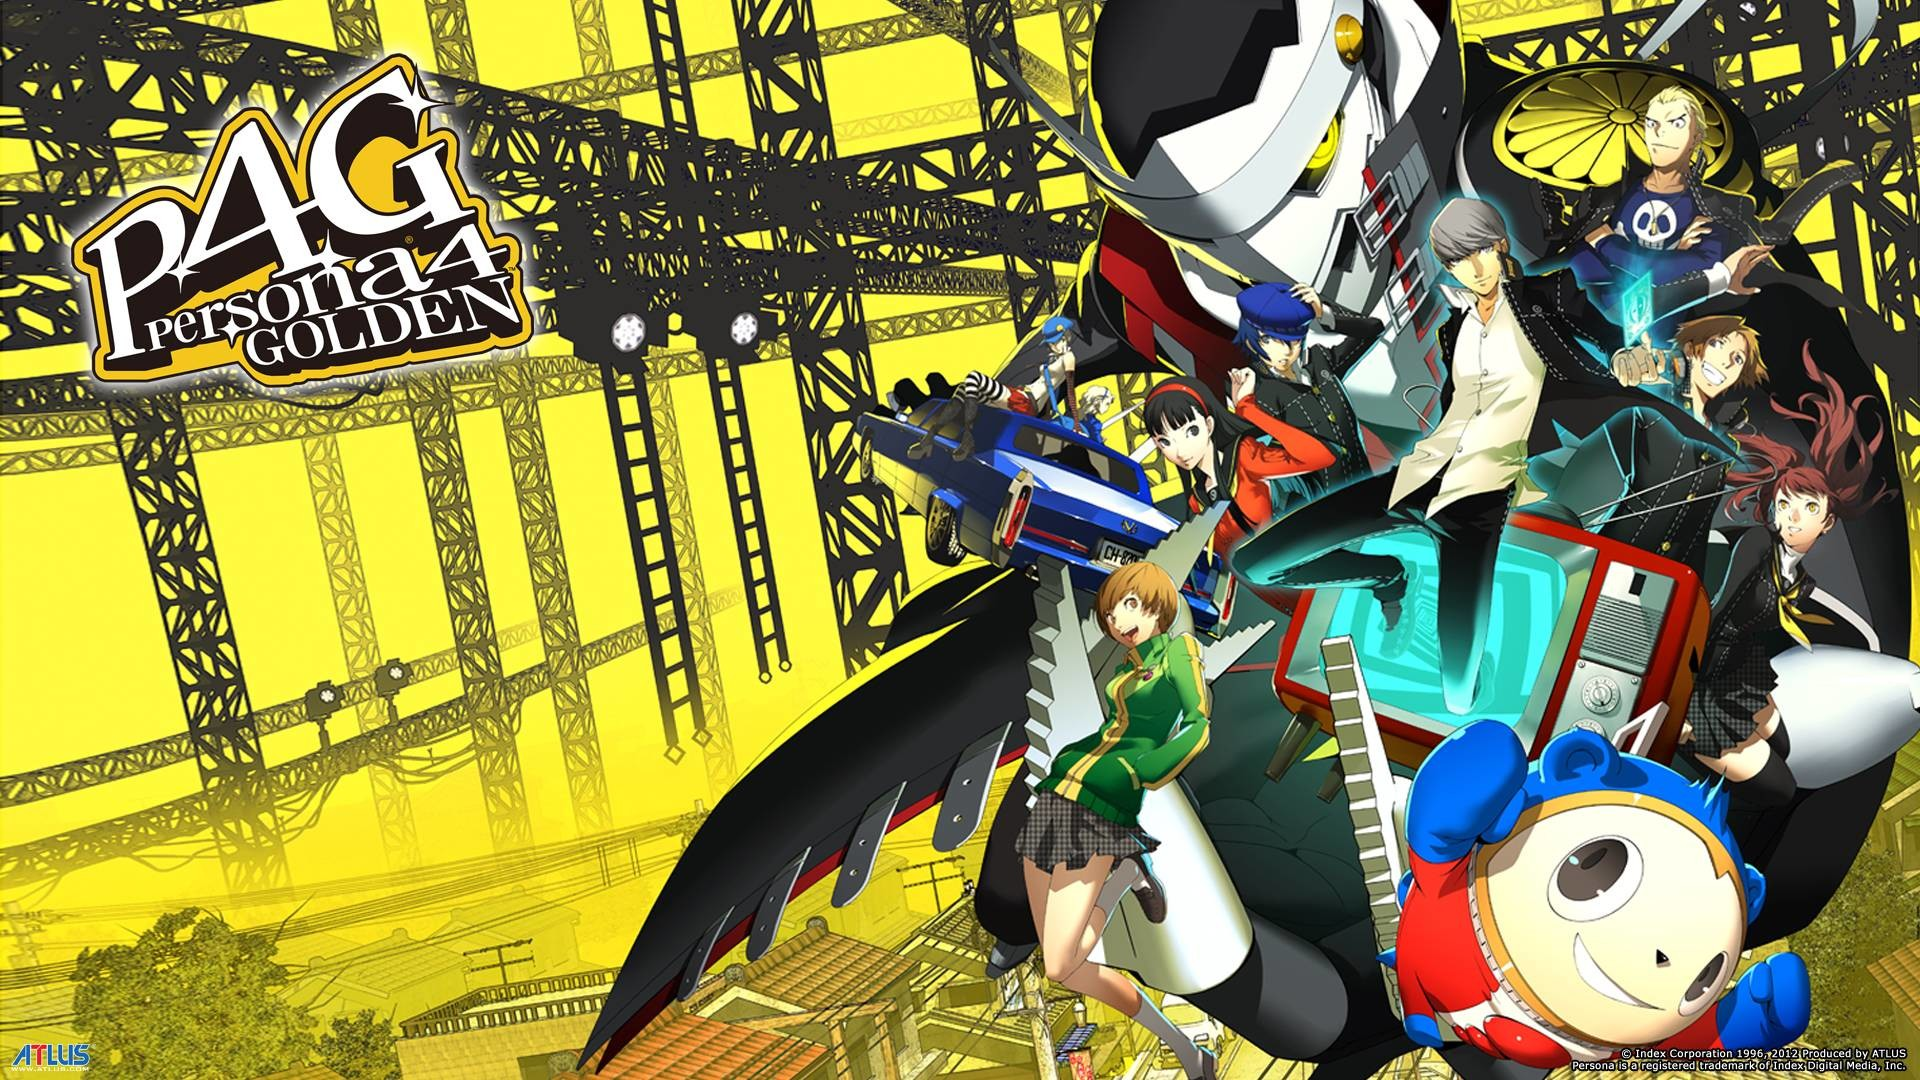 Wallpapers For > Persona 4 Golden Wallpaper Hd